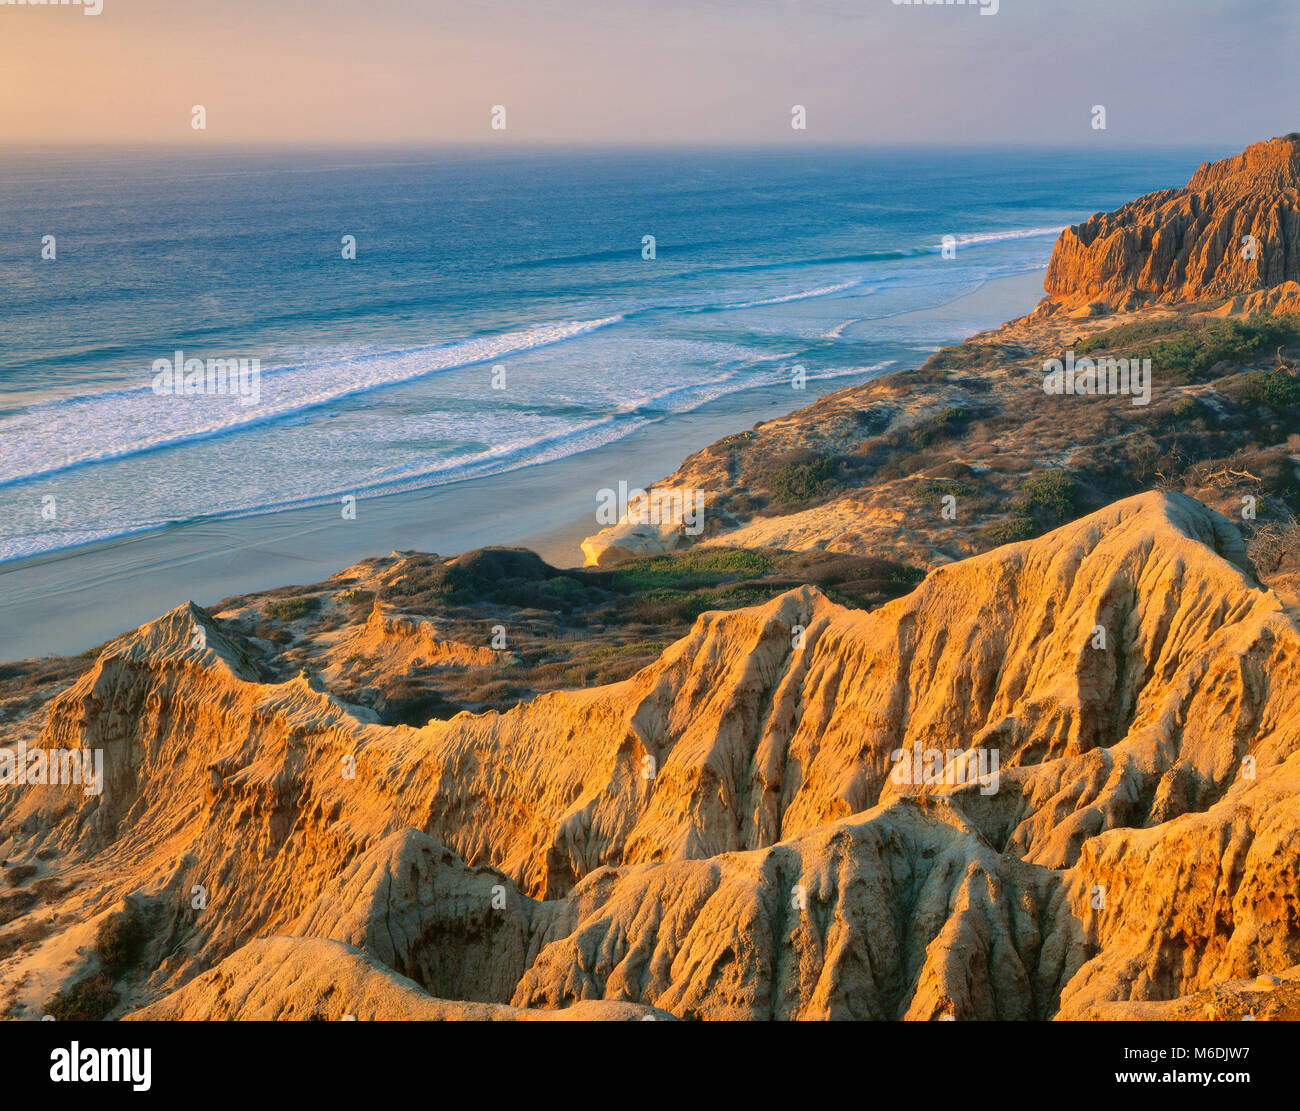 Sunset, Torrey Pines State Beach and State Reserve, La Jolla, San Diego County, California - Stock Image